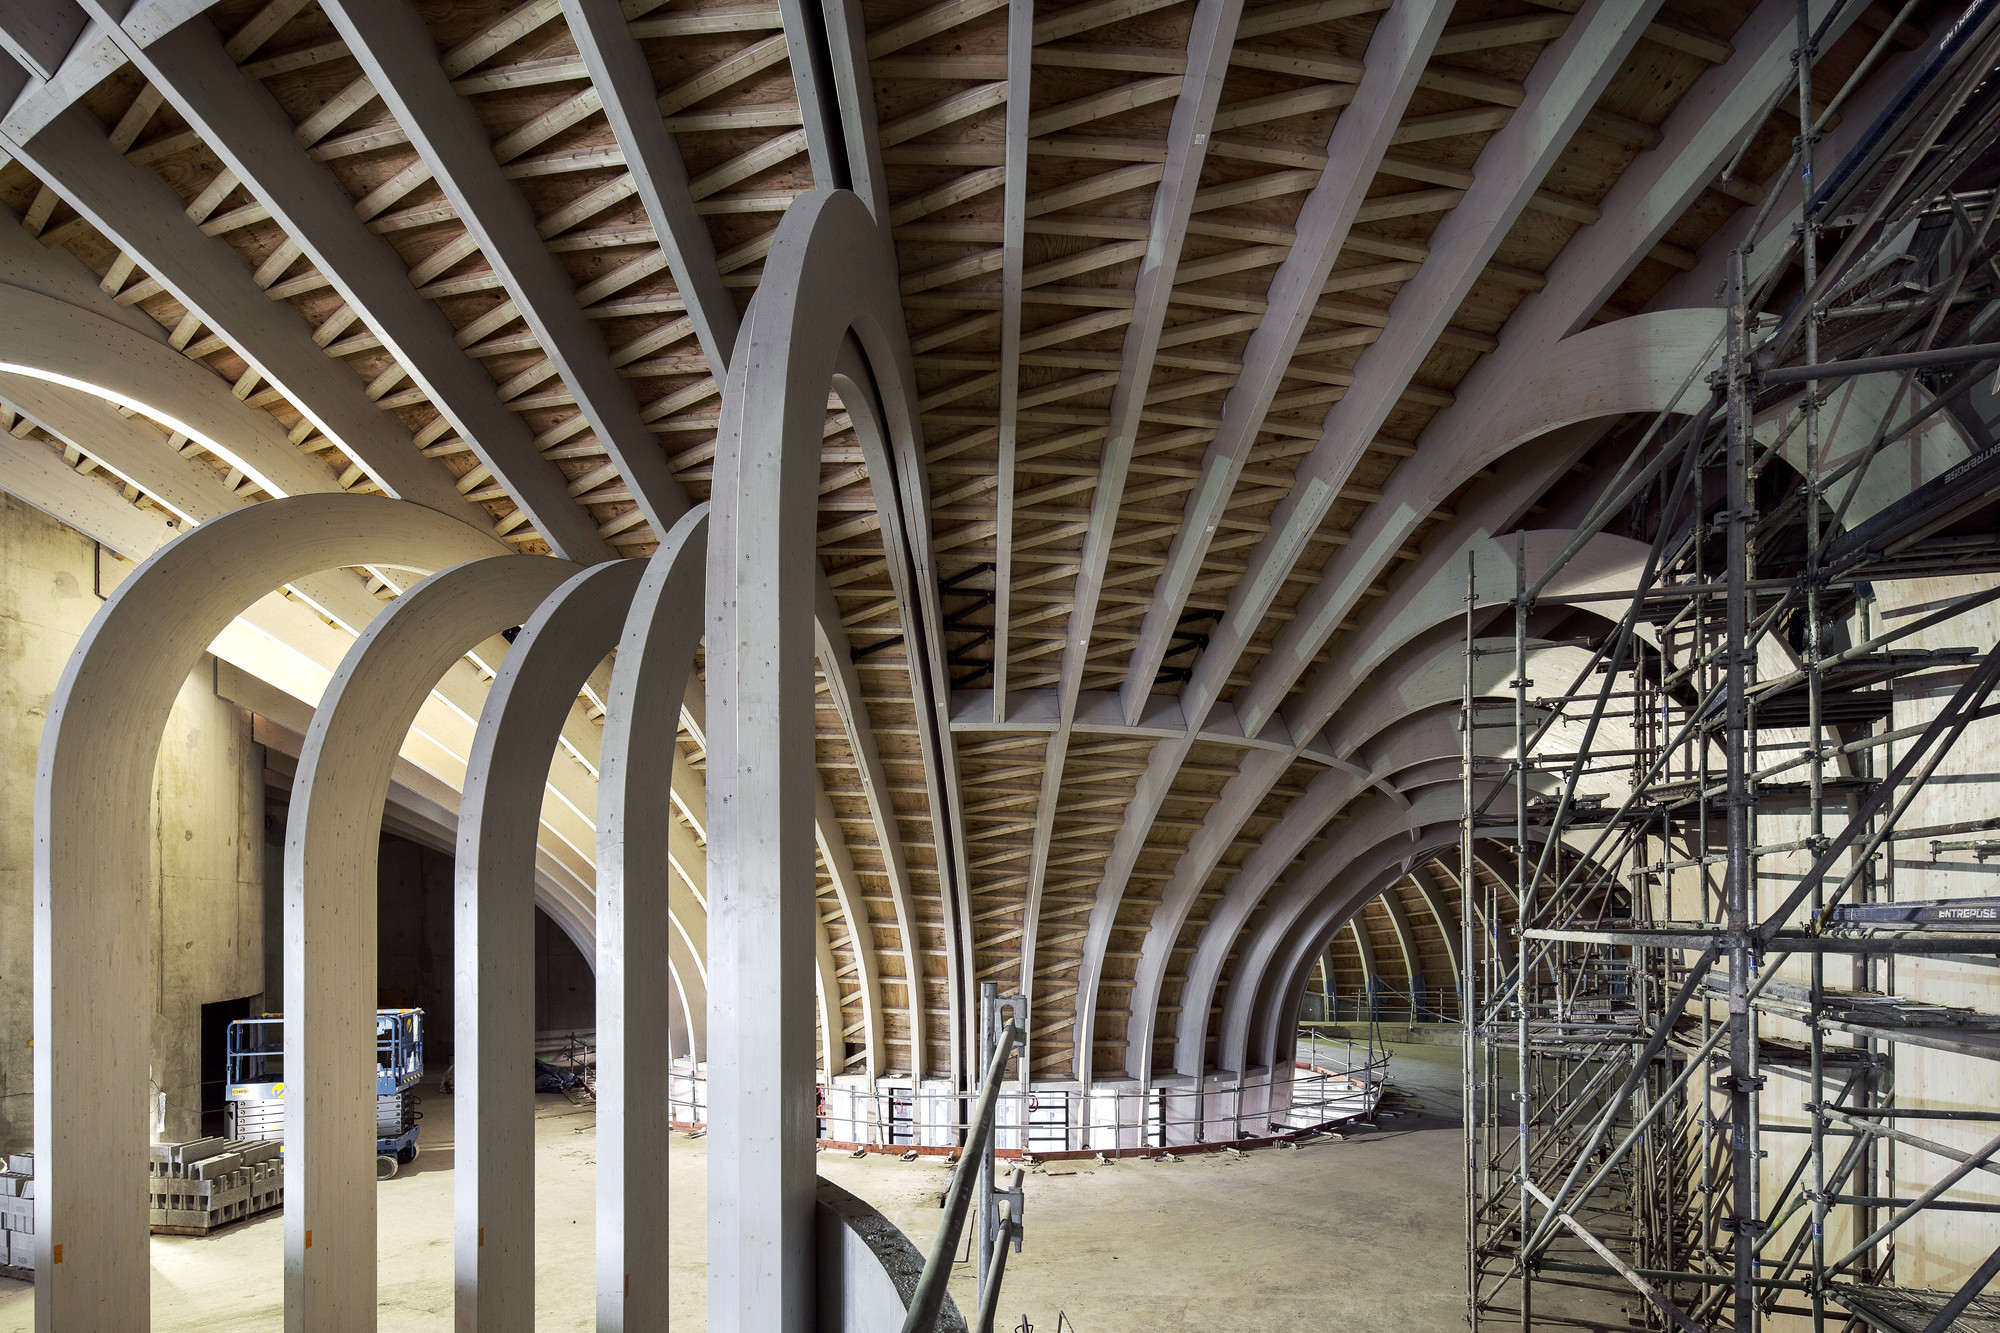 XTU's French Wine Civilizations Museum Set to Open in 2016, Wooden Structure. Image Courtesy of XTU Architects